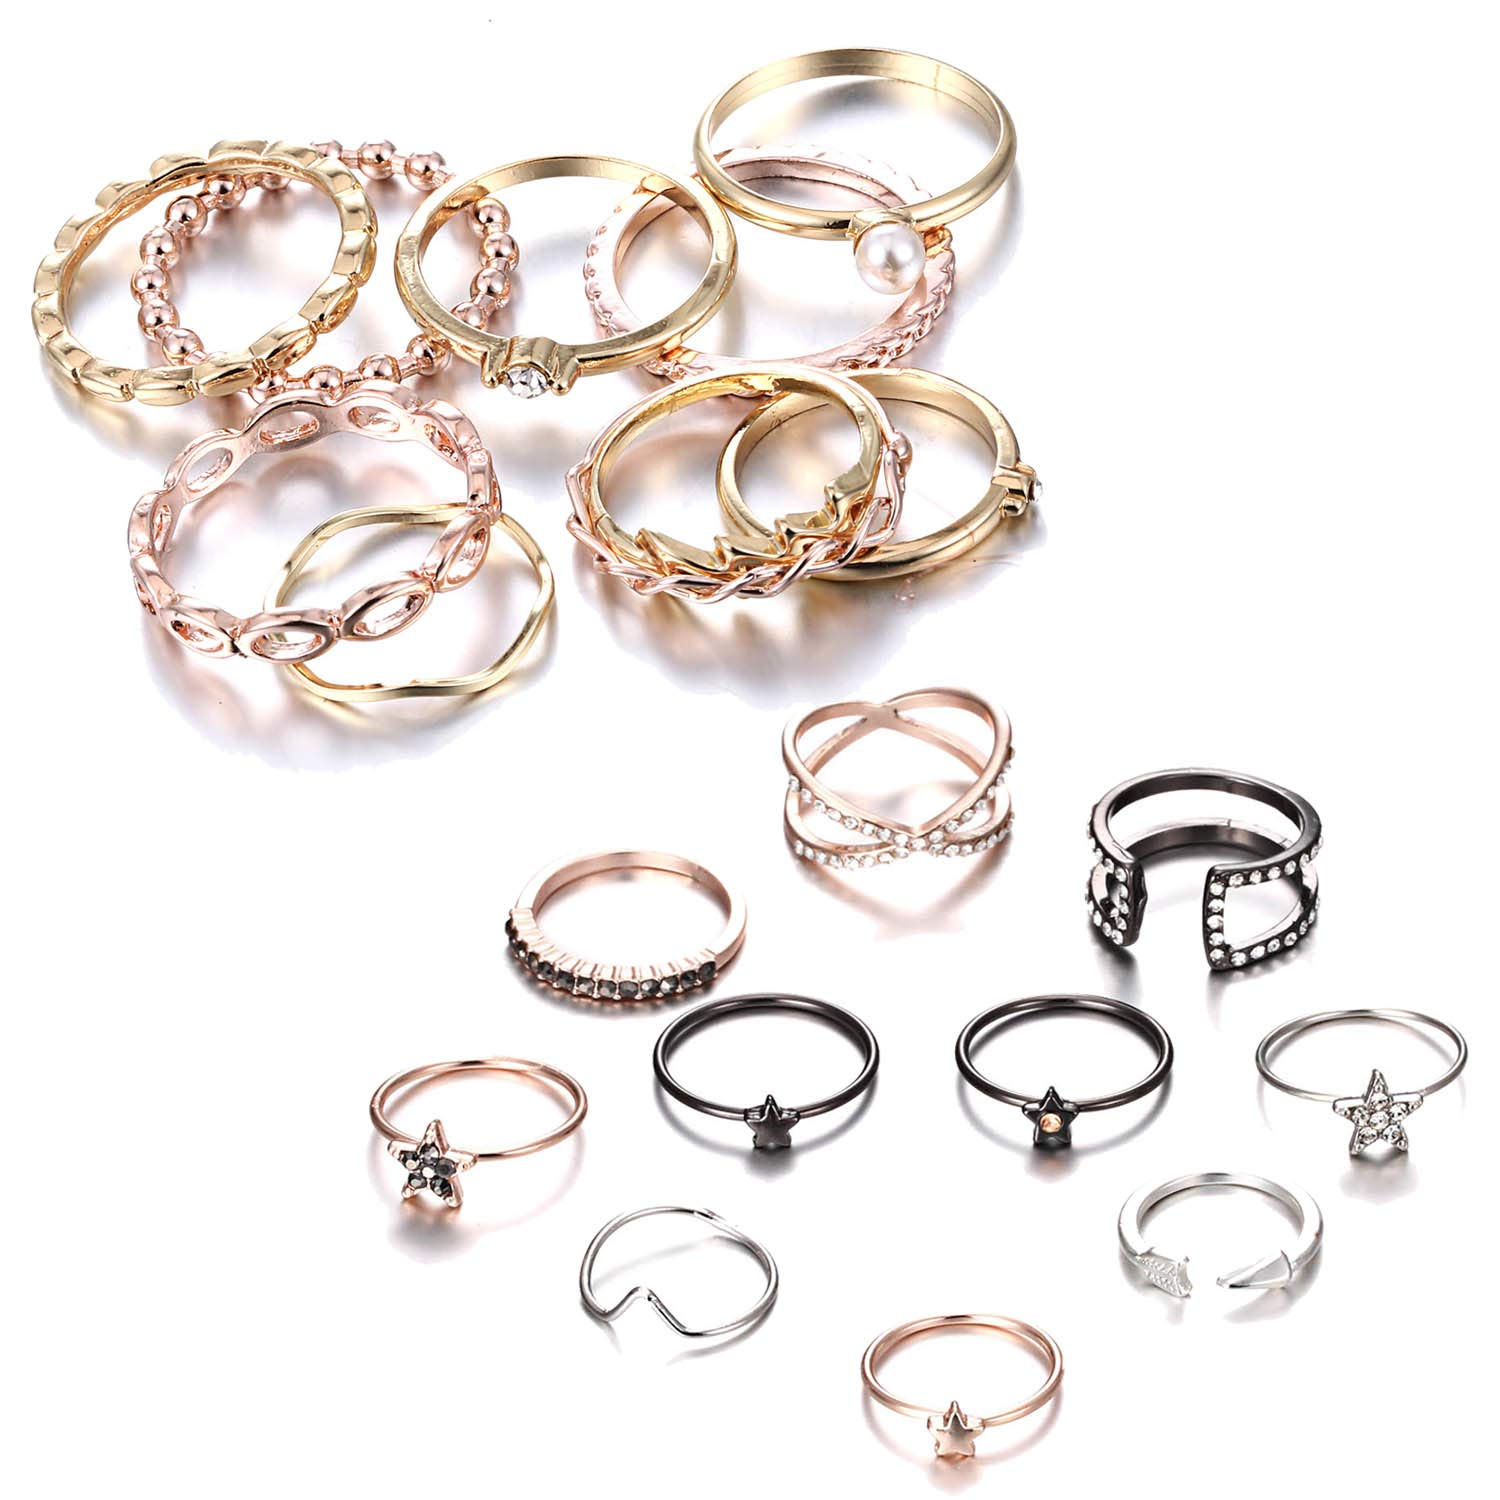 RINHOO FRIENDSHIP 10PCS Bohemian Retro Vintage Crystal Joint Knuckle Ring Sets Finger Rings (Gold|+ Star)